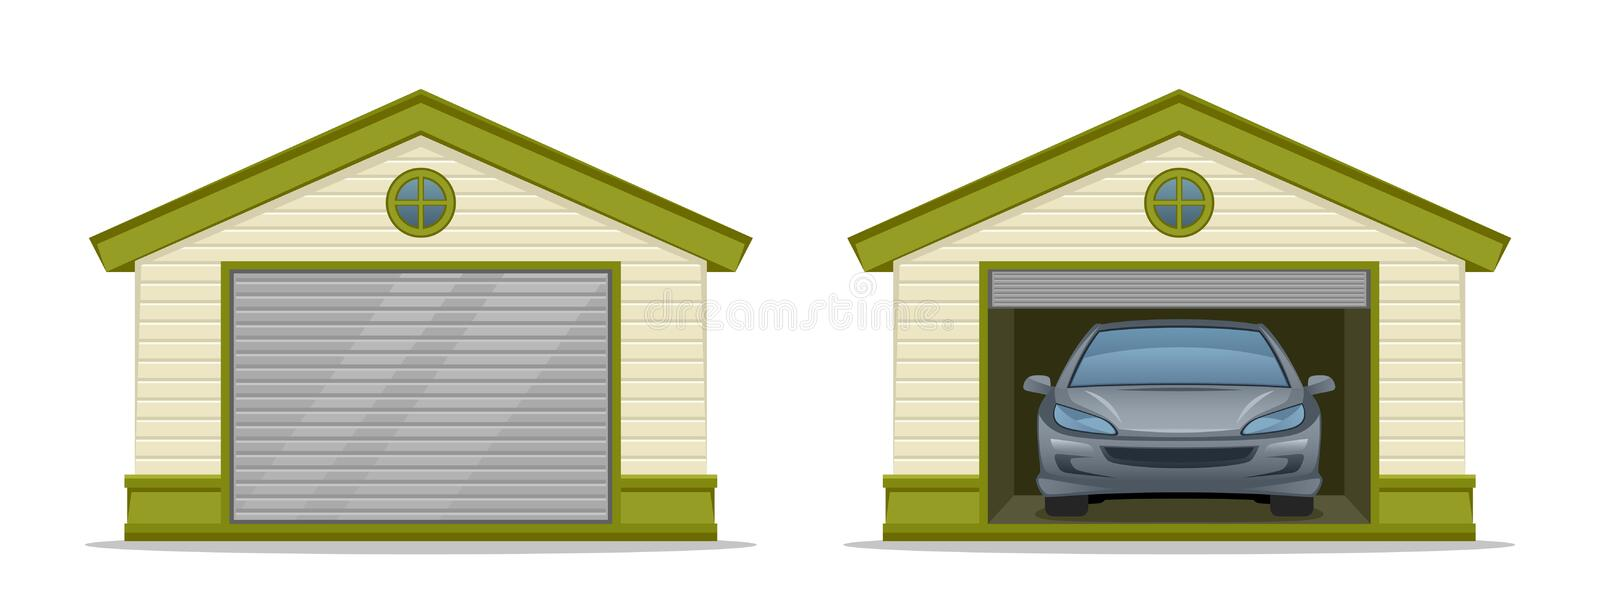 Garage met auto stock illustratie